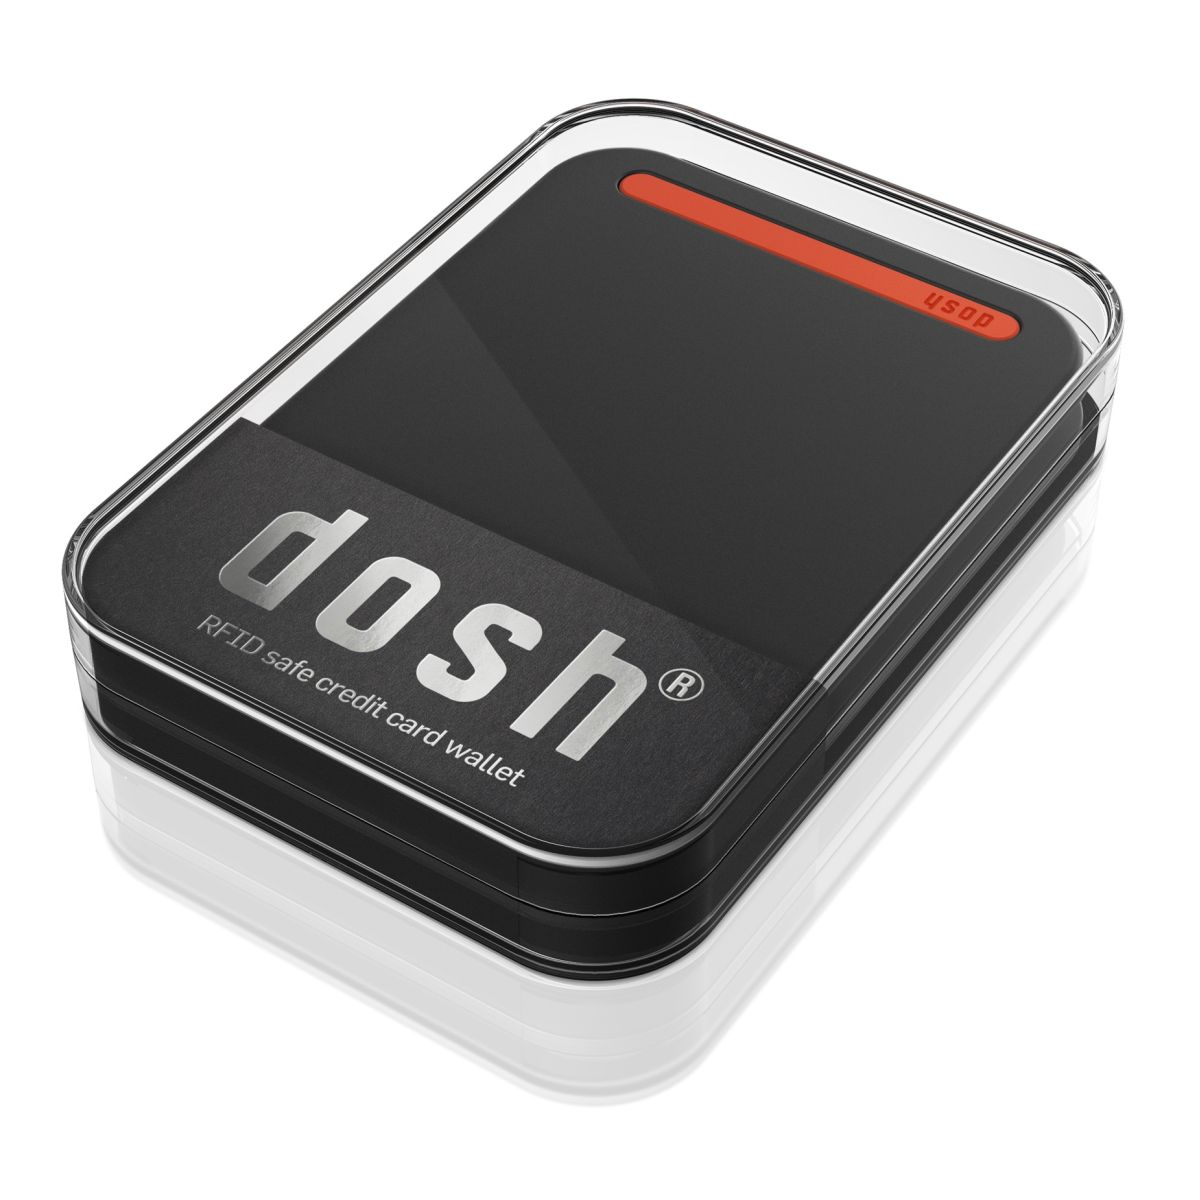 dosh AERO RFID - FLAME- Black / Orange